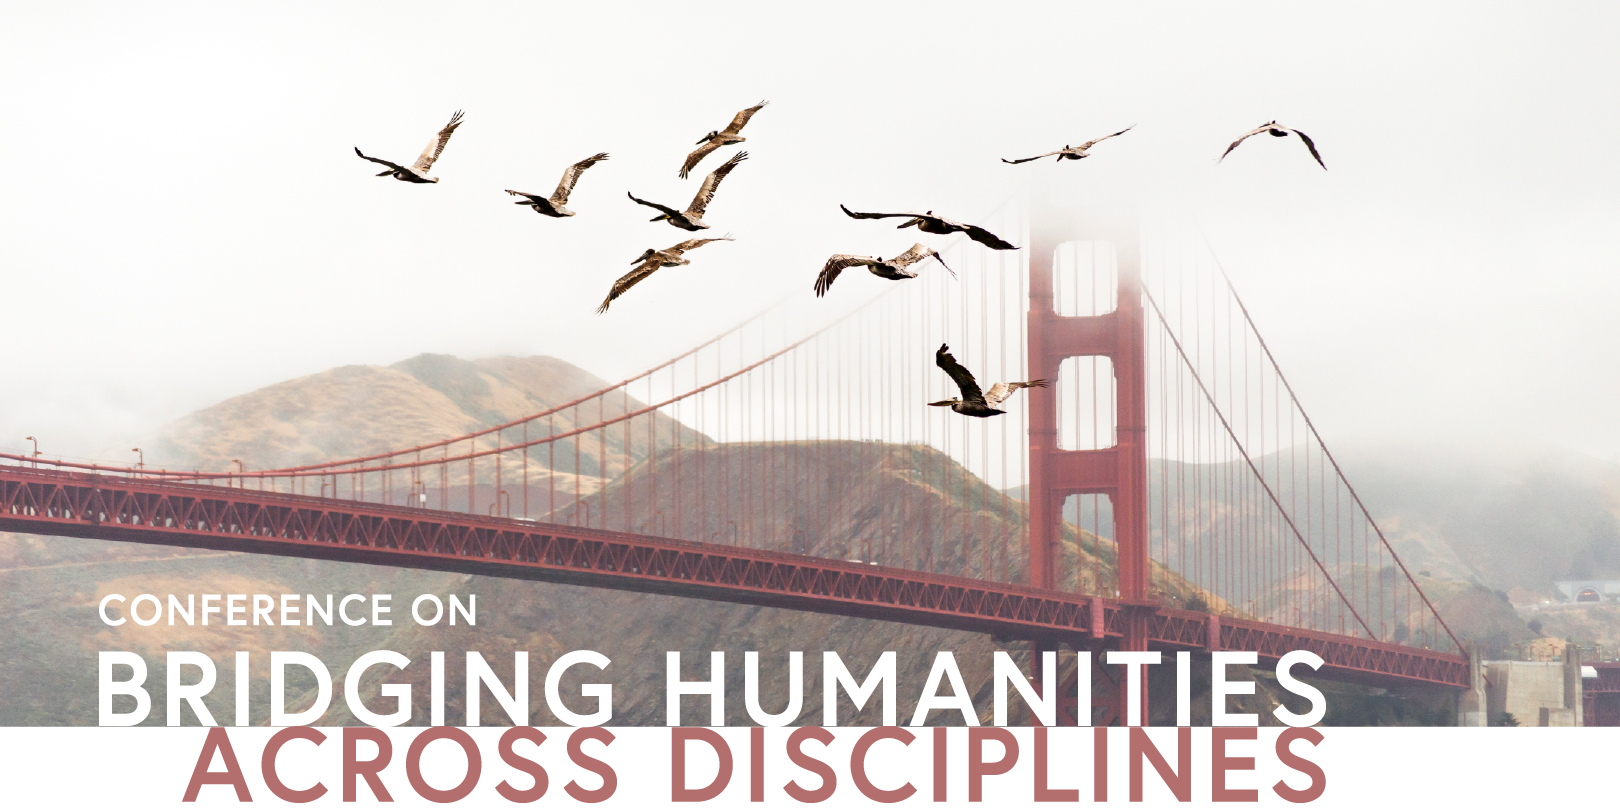 Conference on Bridging Humanities Across Disciplines